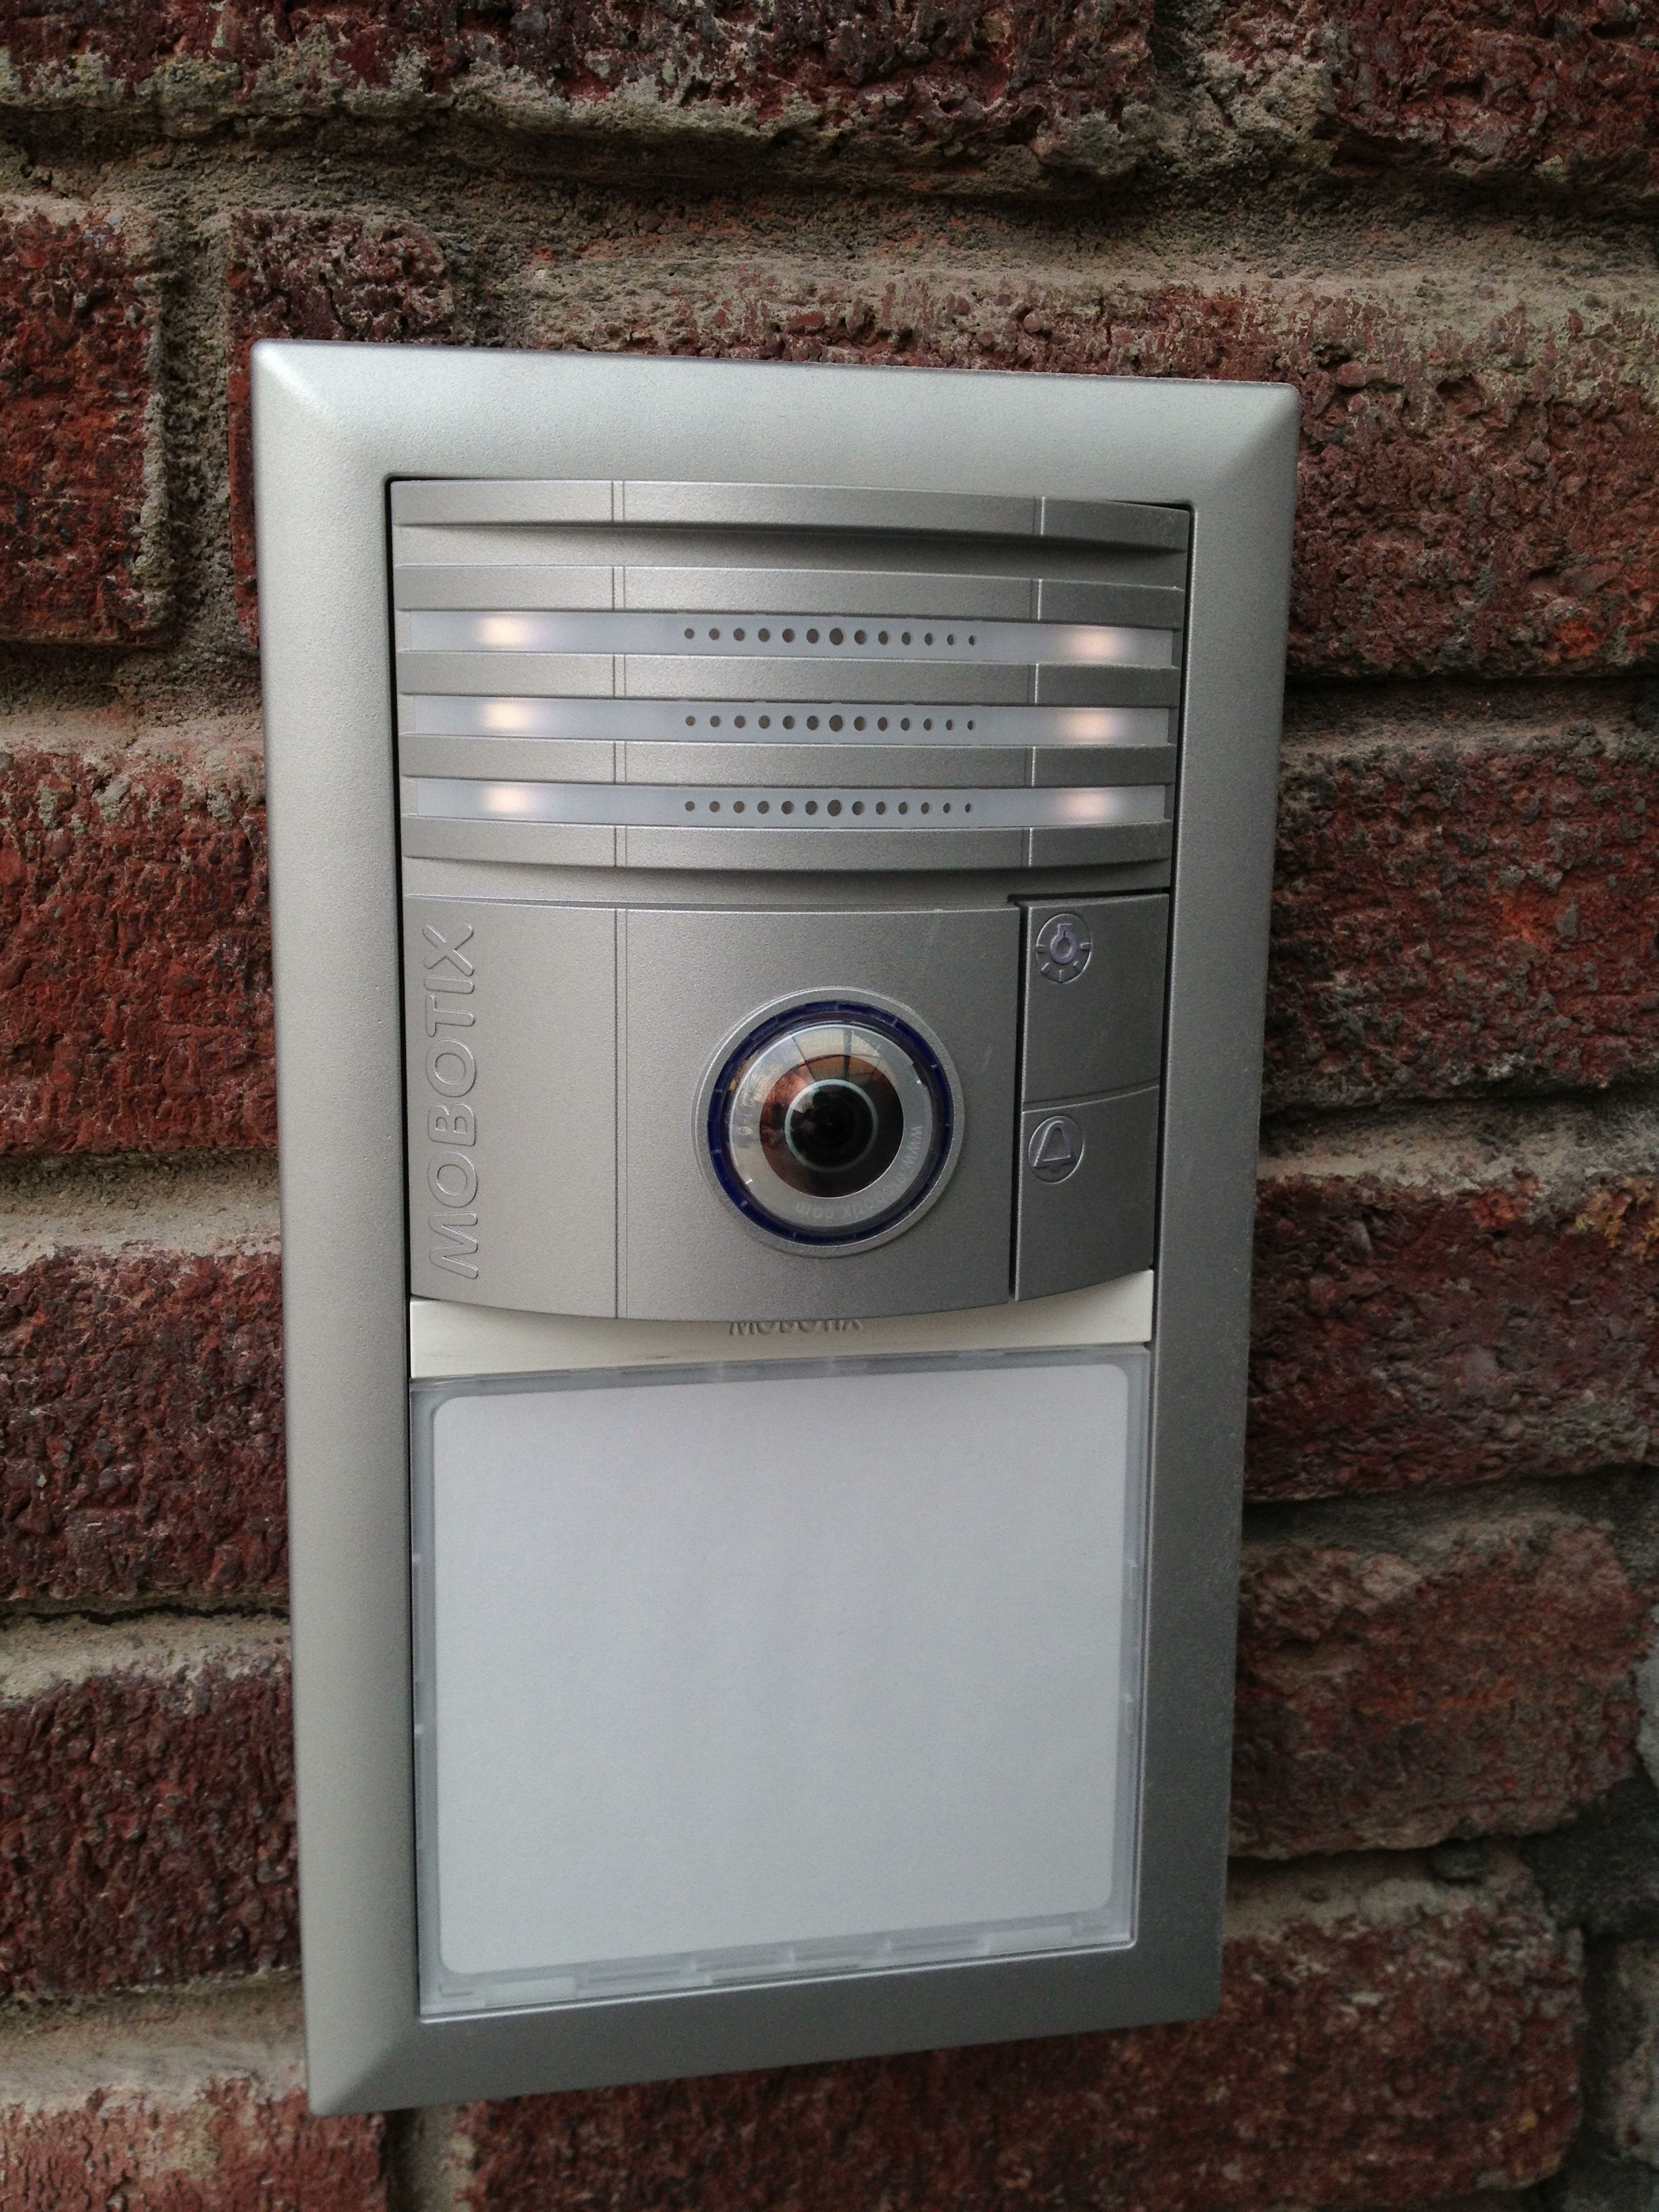 front door video cameraMobotix Front Door video intercom for your home or business by EOS